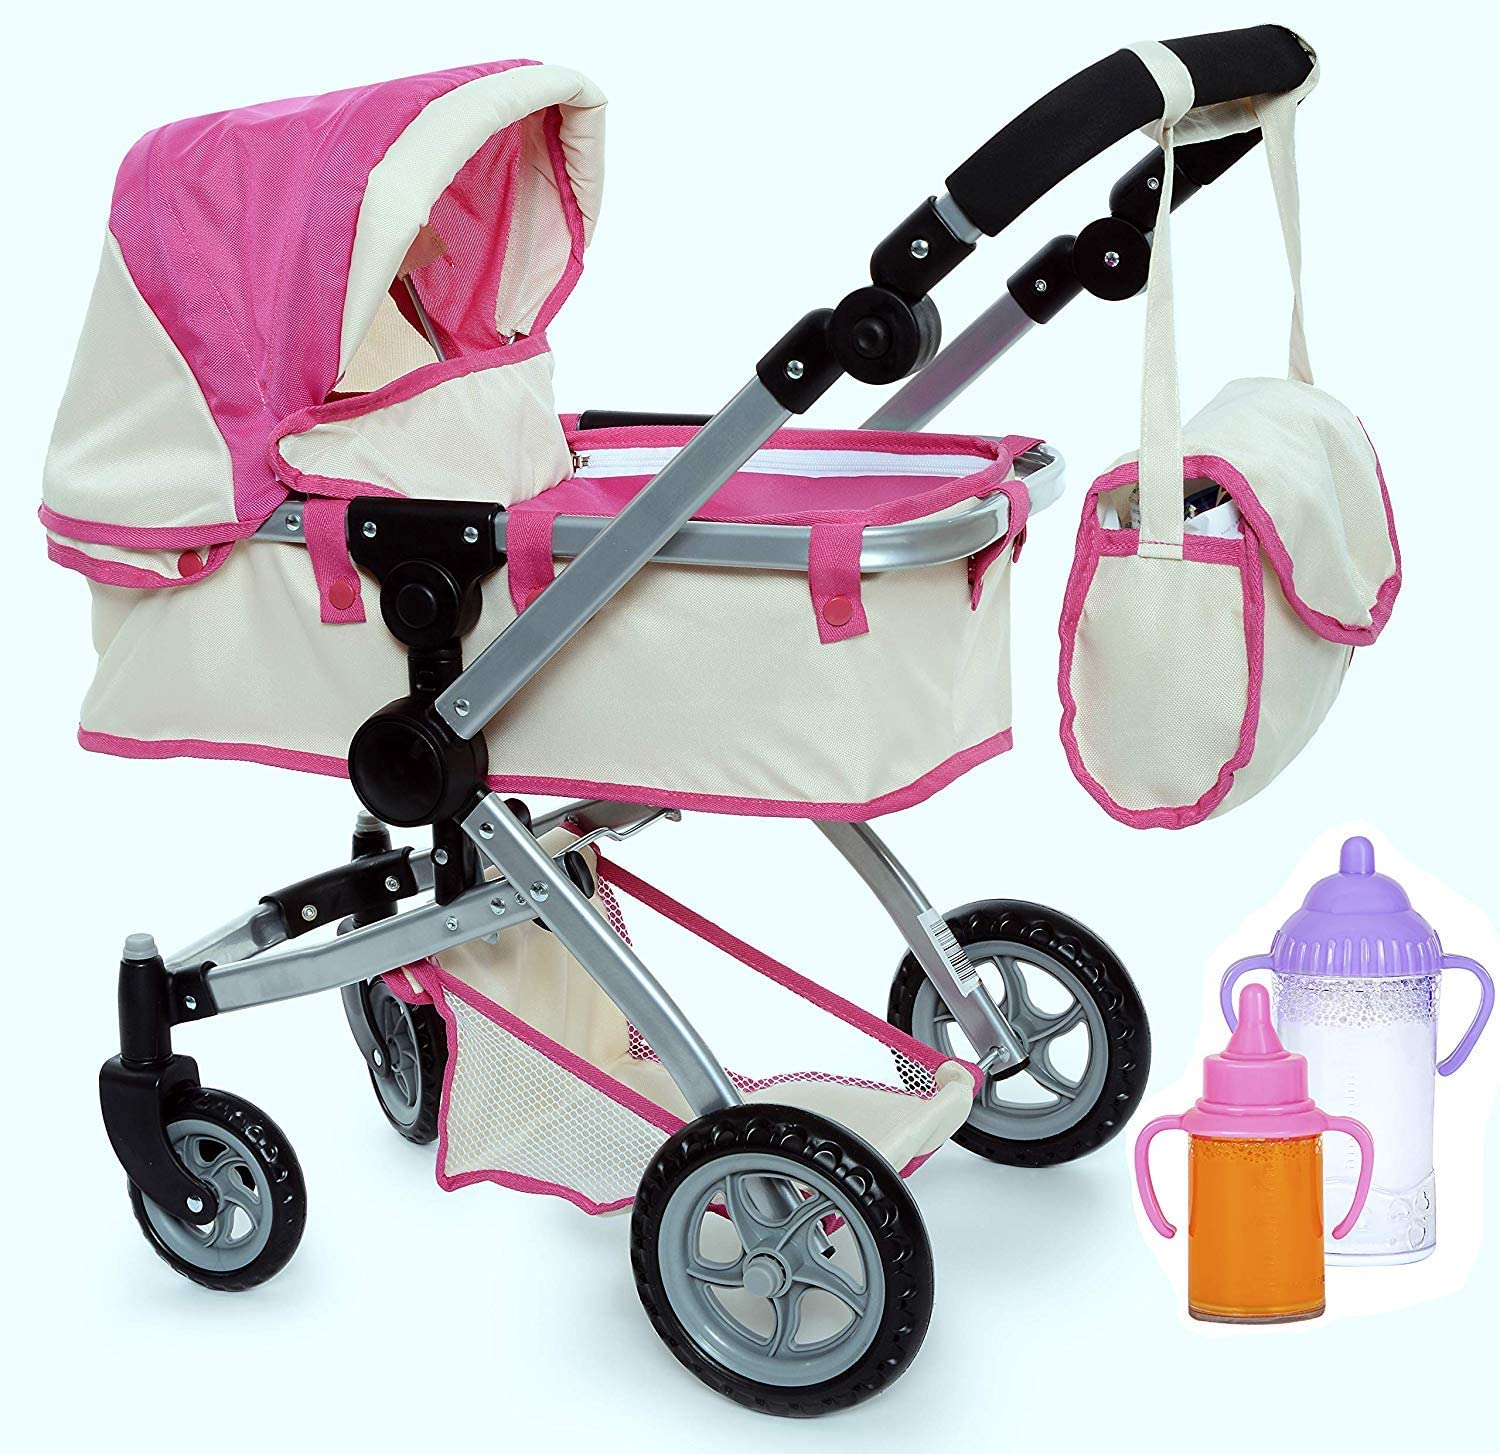 fash n kolor Exquisite Buggy | Foldable Pram for Baby Doll with Polka Dots Design with Swiveling Wheel Adjustable Handle with 2 Free Magic Toy Bottles (Flower)